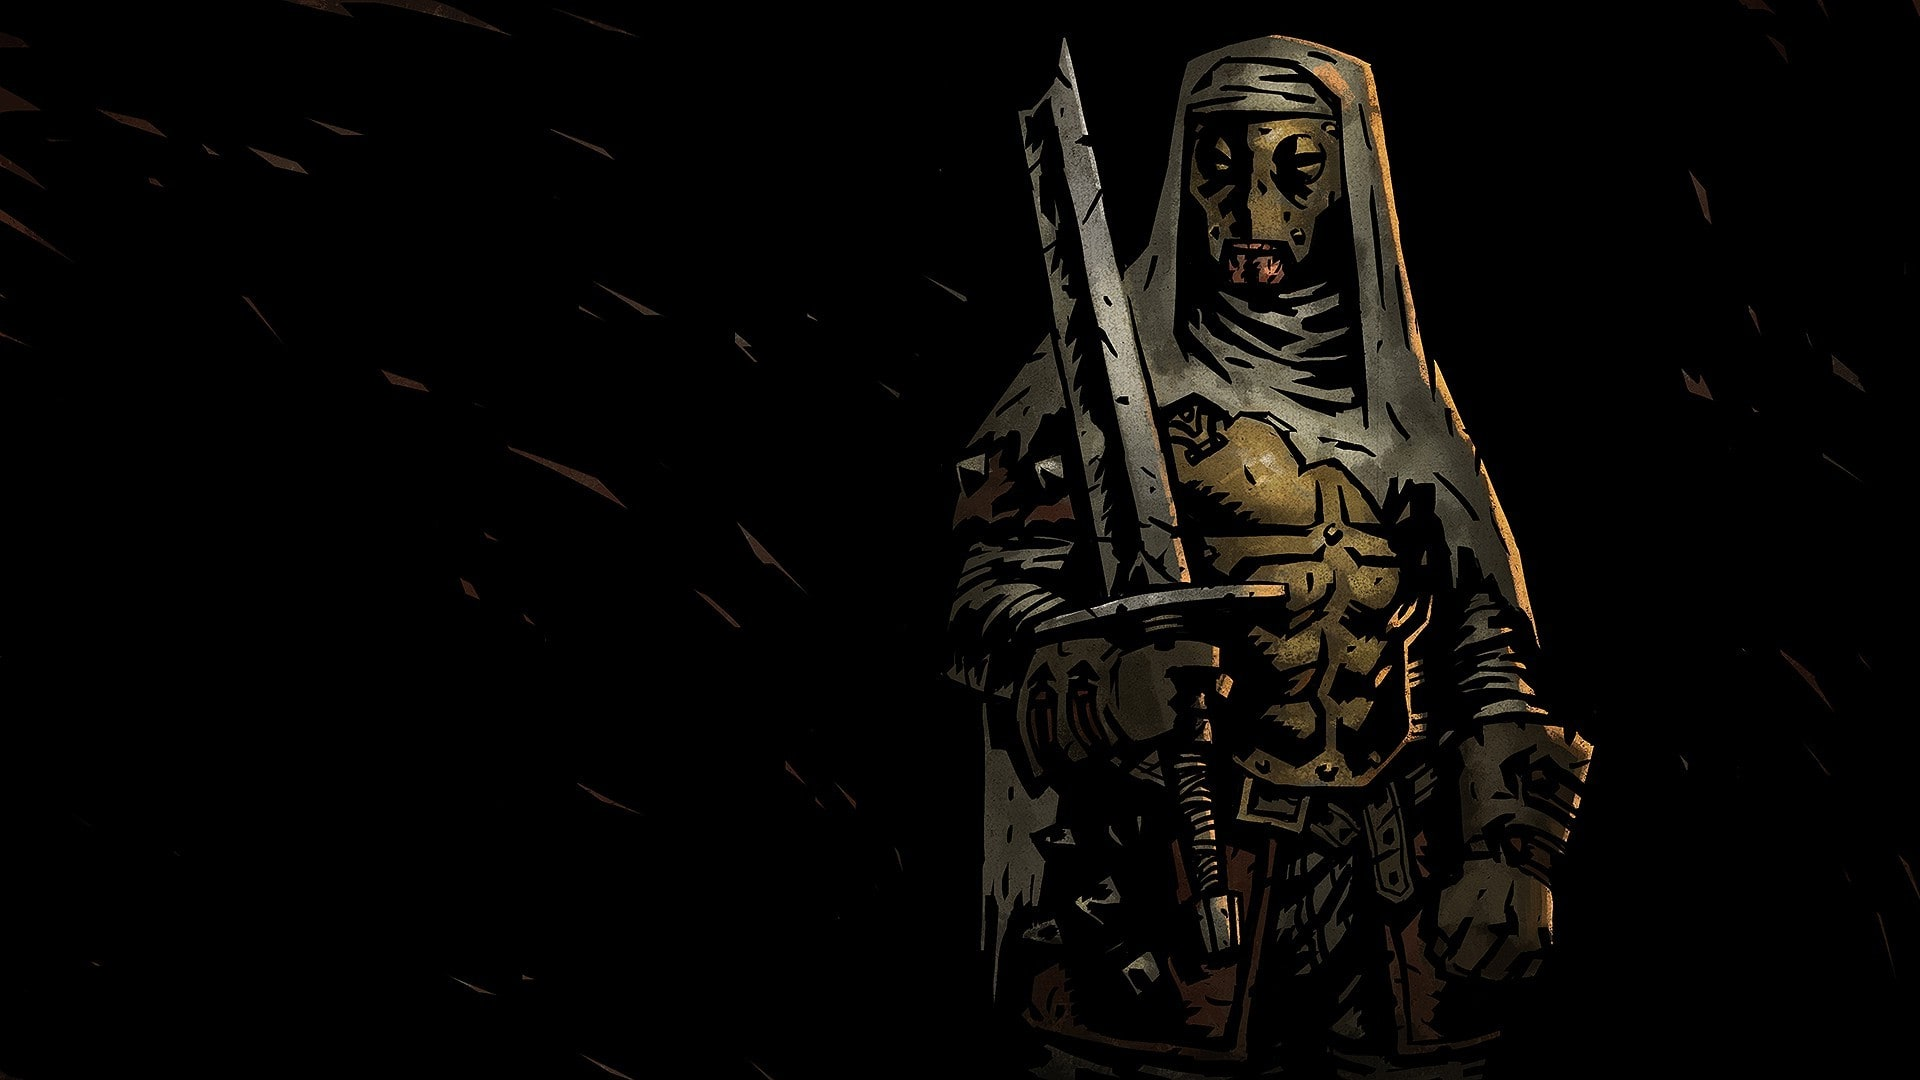 Darkest Dungeon: Leper widescreen wallpapers